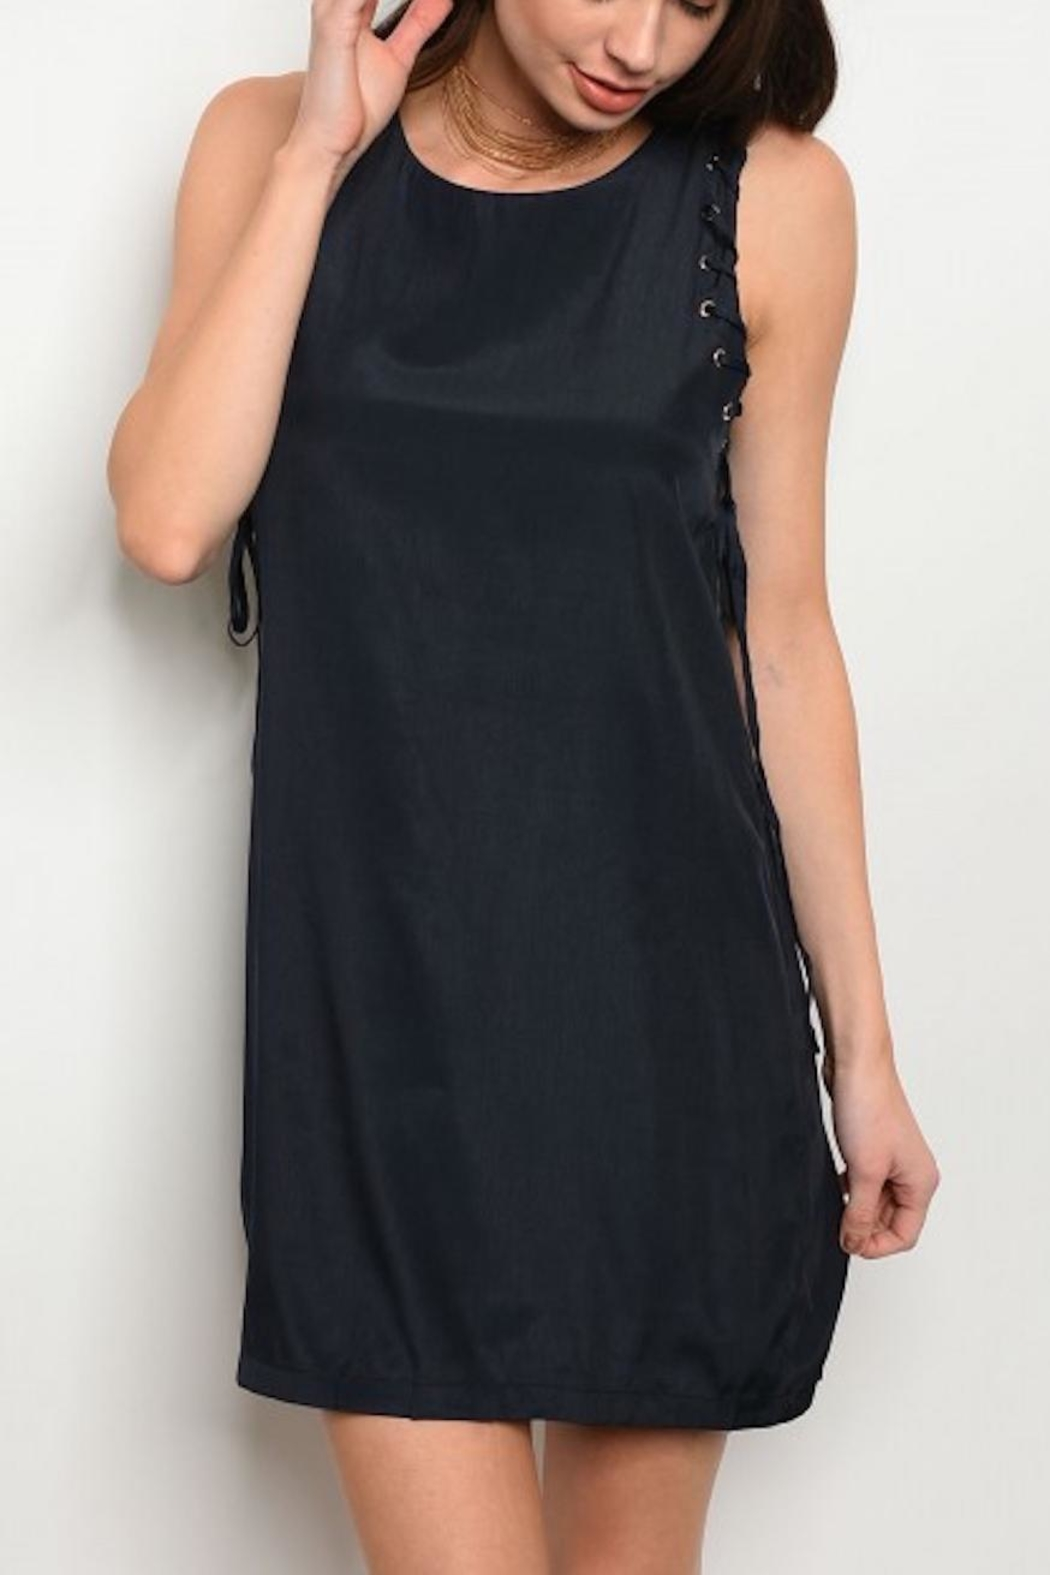 Grifflin Paris Sleeveless Navy Dress - Main Image